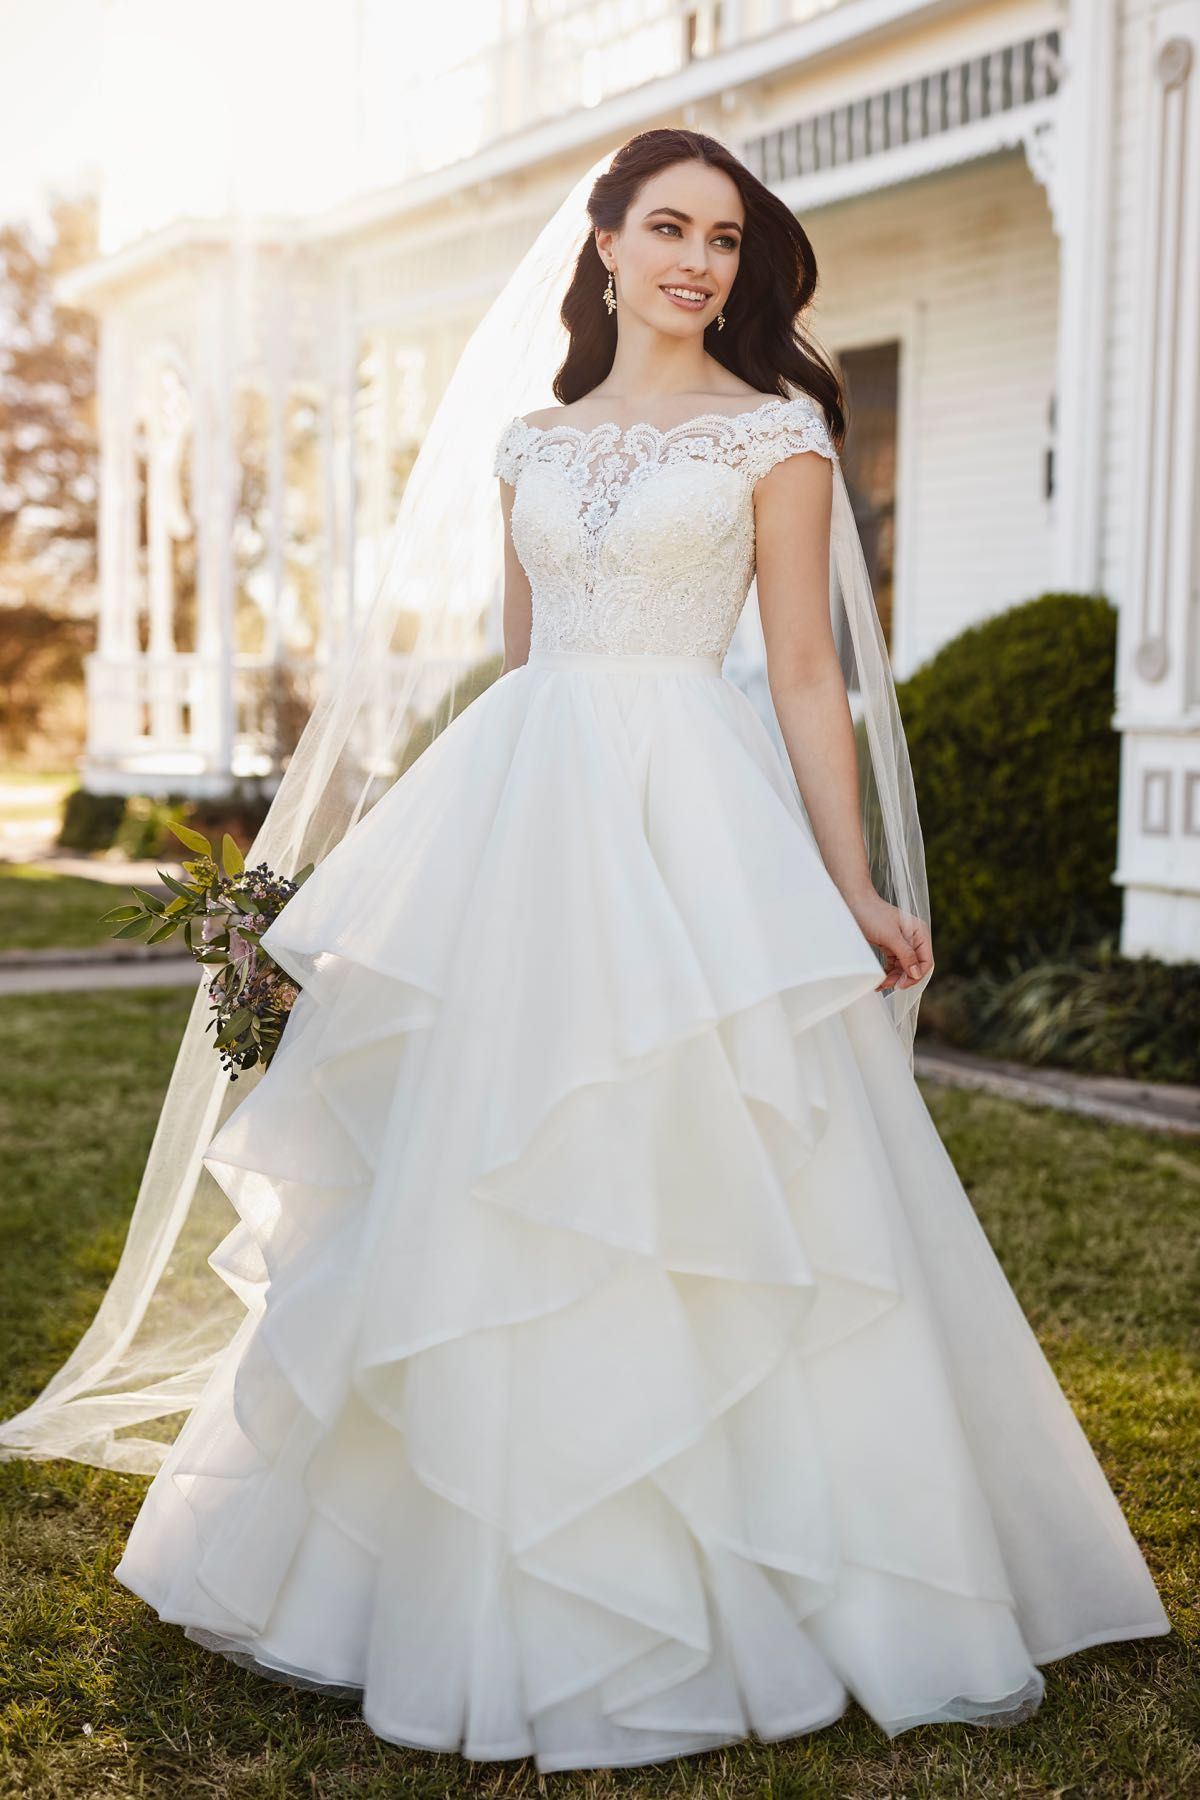 00d5b044066 Chelsi + Stevie  Classic Off-the shoulder Wedding Dress Separates by  Martina Liana. The Chelsi Corset and Stevie Skirt combine to create a  classic ...